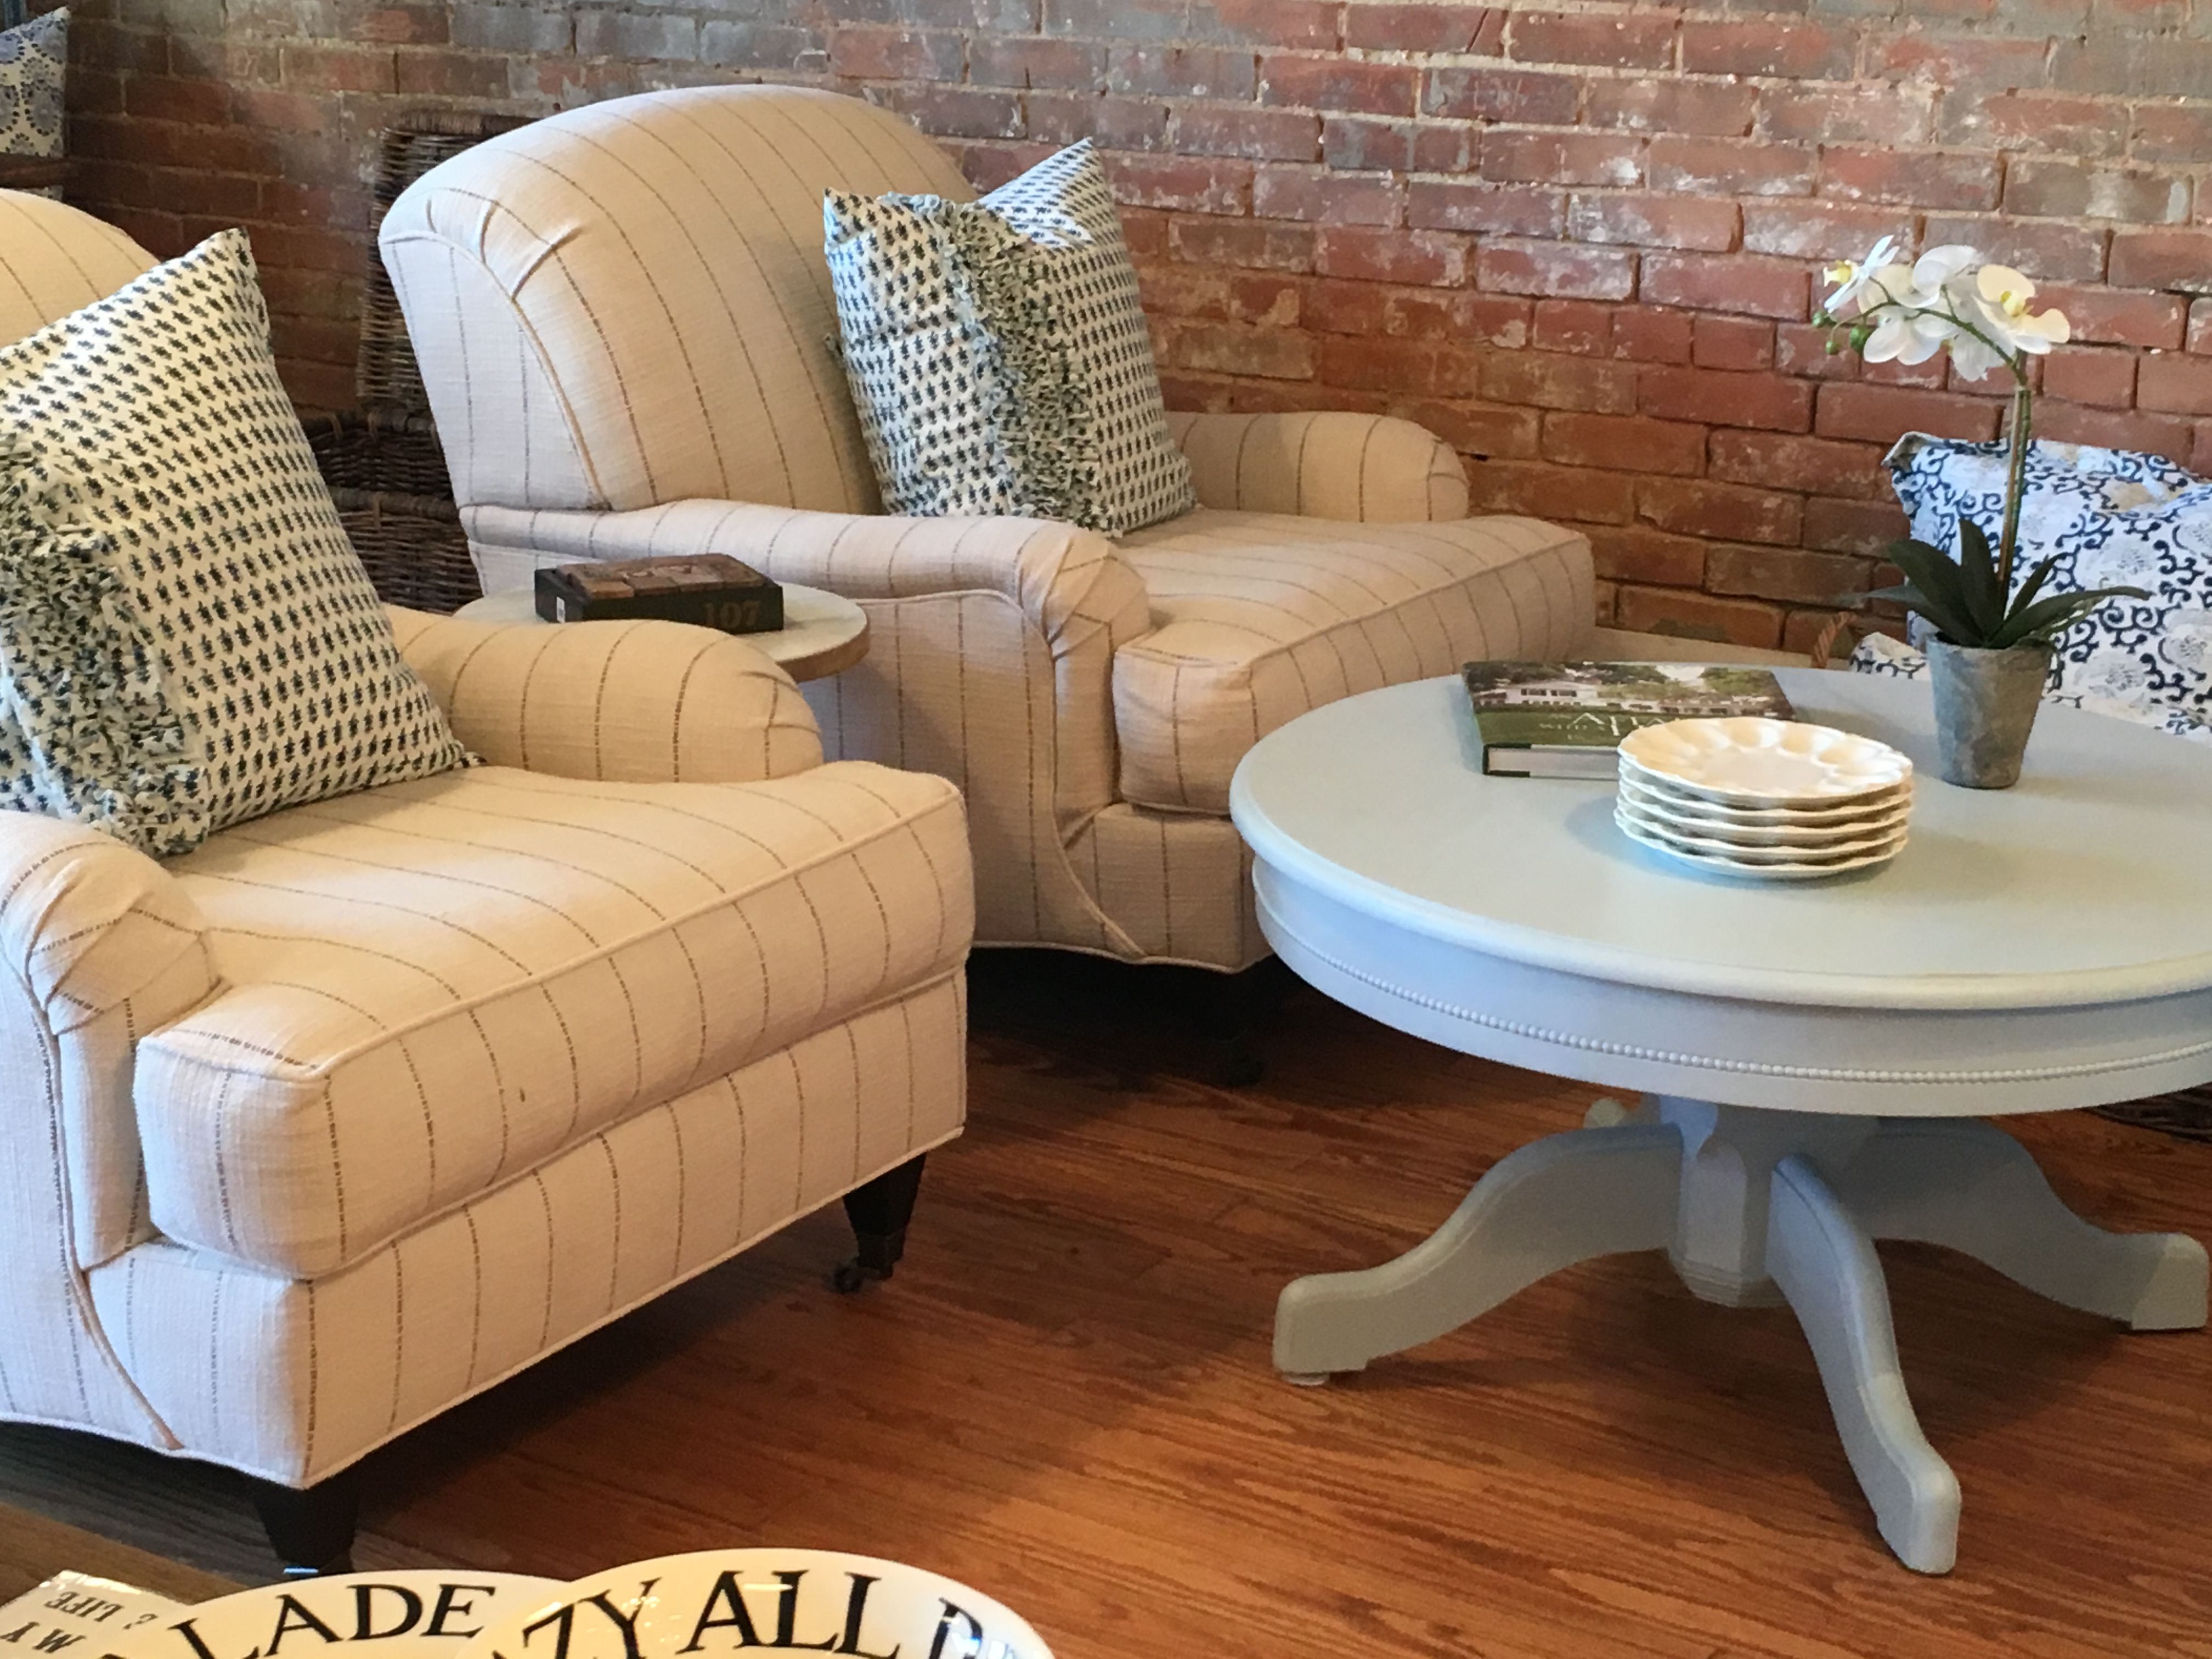 moss studio sofa reviews abbyson living levari reclining leather and loveseat my favorite sofas holly mathis interiors by carrying two lines at true blue home we able to offer different price points styles yummy libeco stonewashed linen on the top of